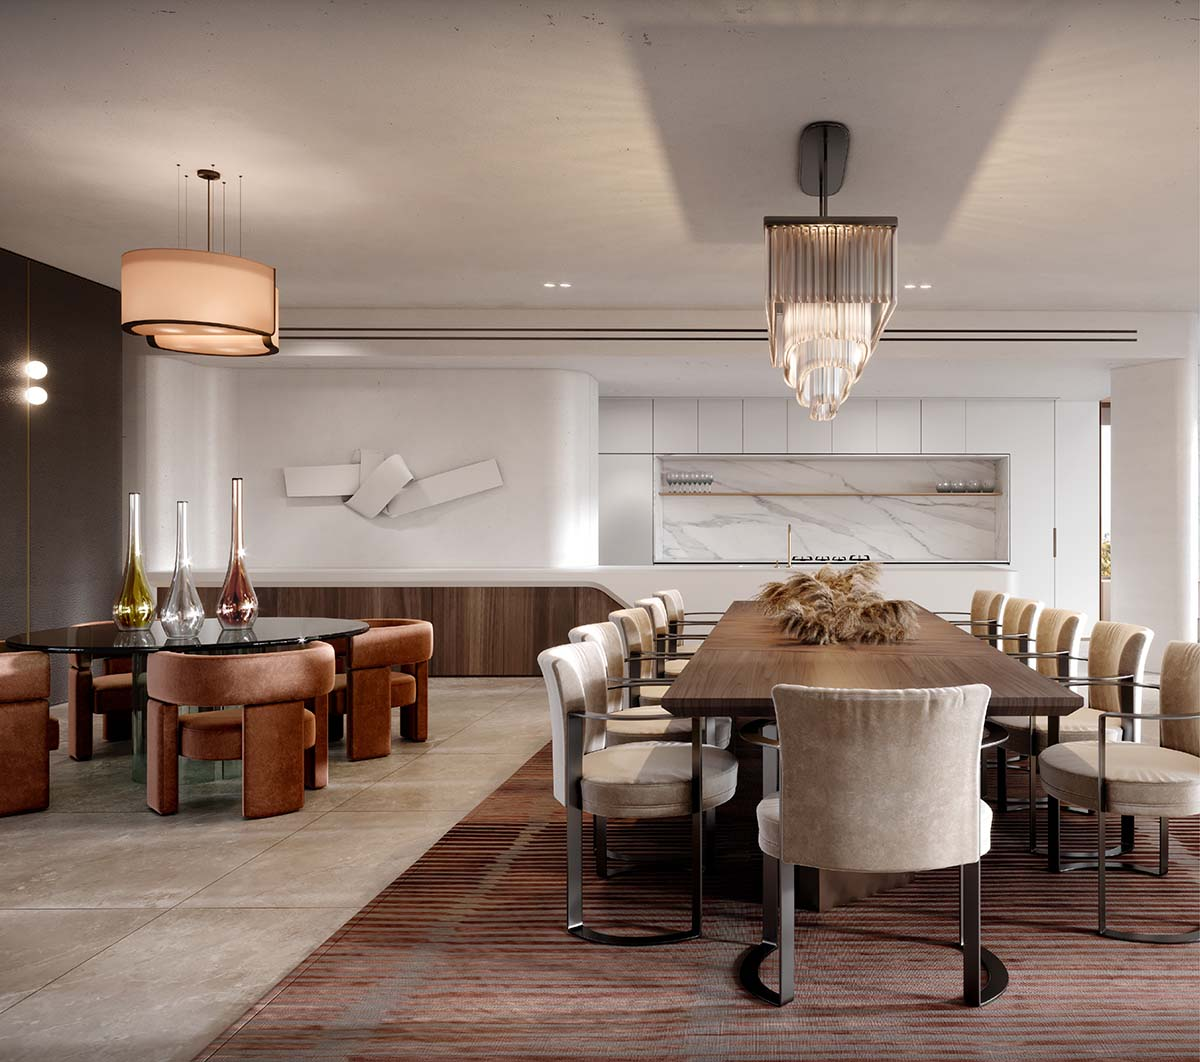 Luxury dining and living area in Rose Bay showing Fendi, Hermes and Mario Bellini architects furniture